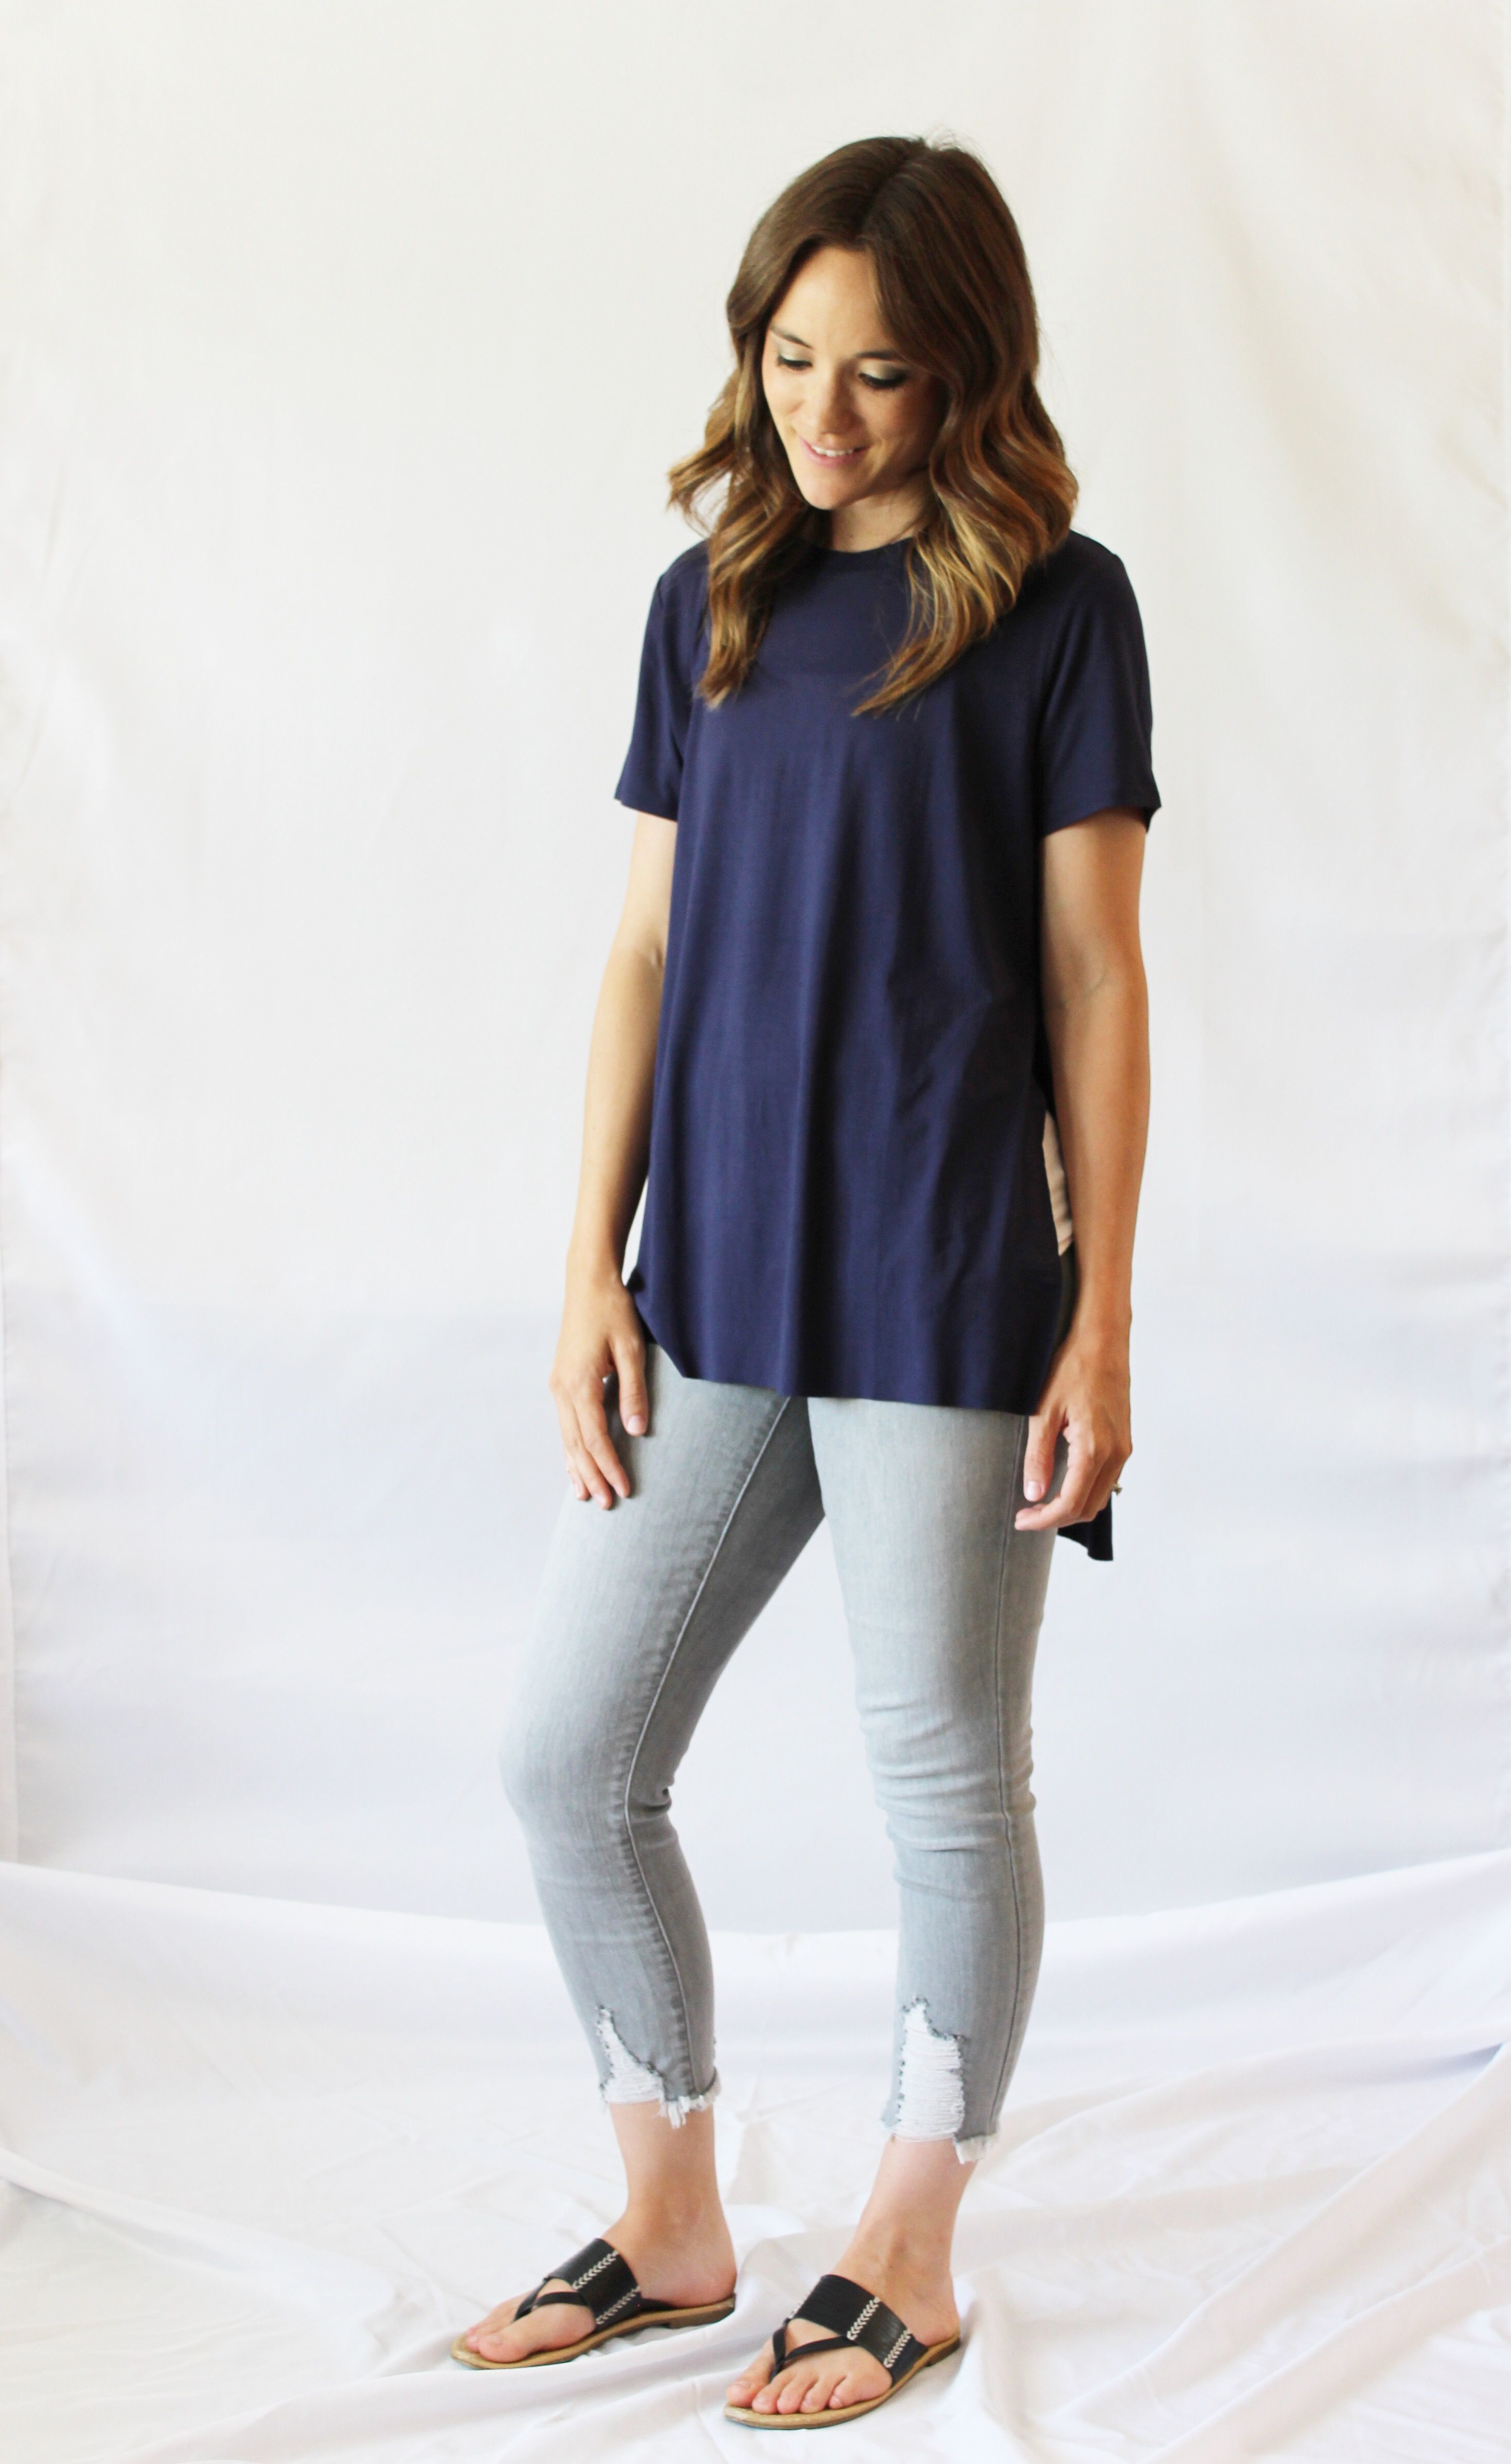 4a3b96785aa5f Navy Tunic Tee. The side slits provide easy breastfeeding access and  accommodate a pregnancy belly. You can lift just the front of the shirt to  nurse, ...